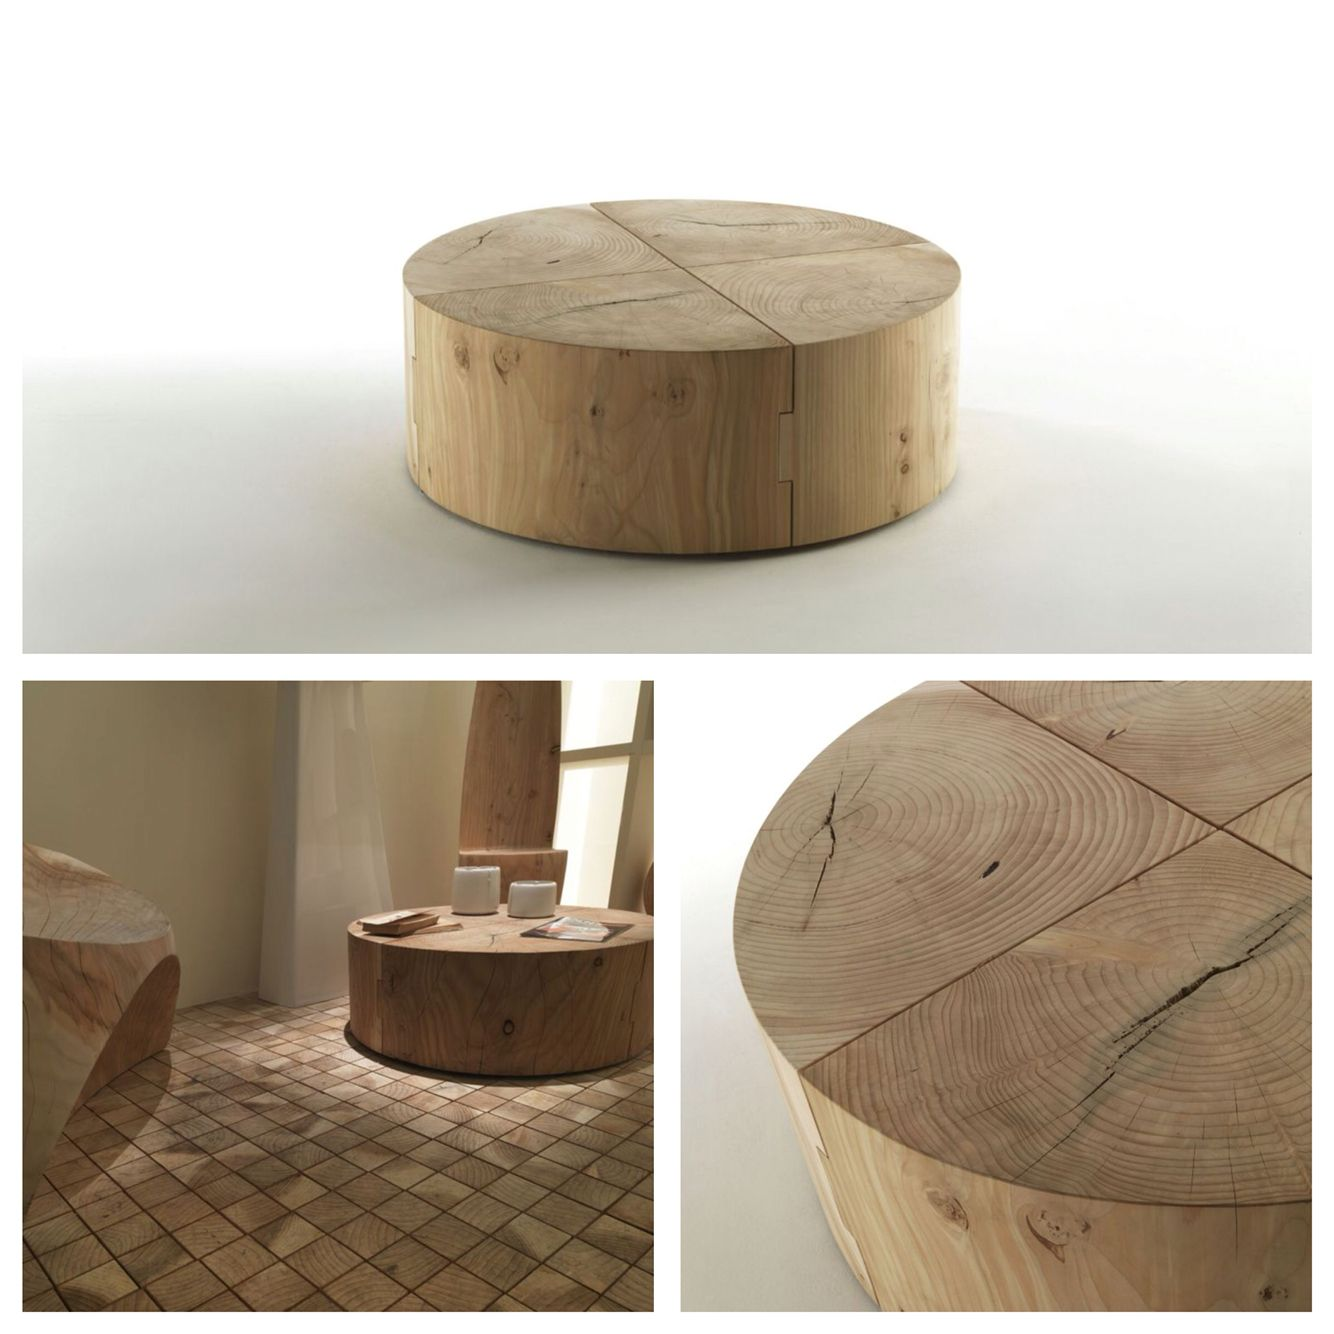 Riva 1920 Made In Italy In Solid Wood Eco Block Coffee Table Project By C R S Riva Bolacha De Madeira De Madeira Madeira